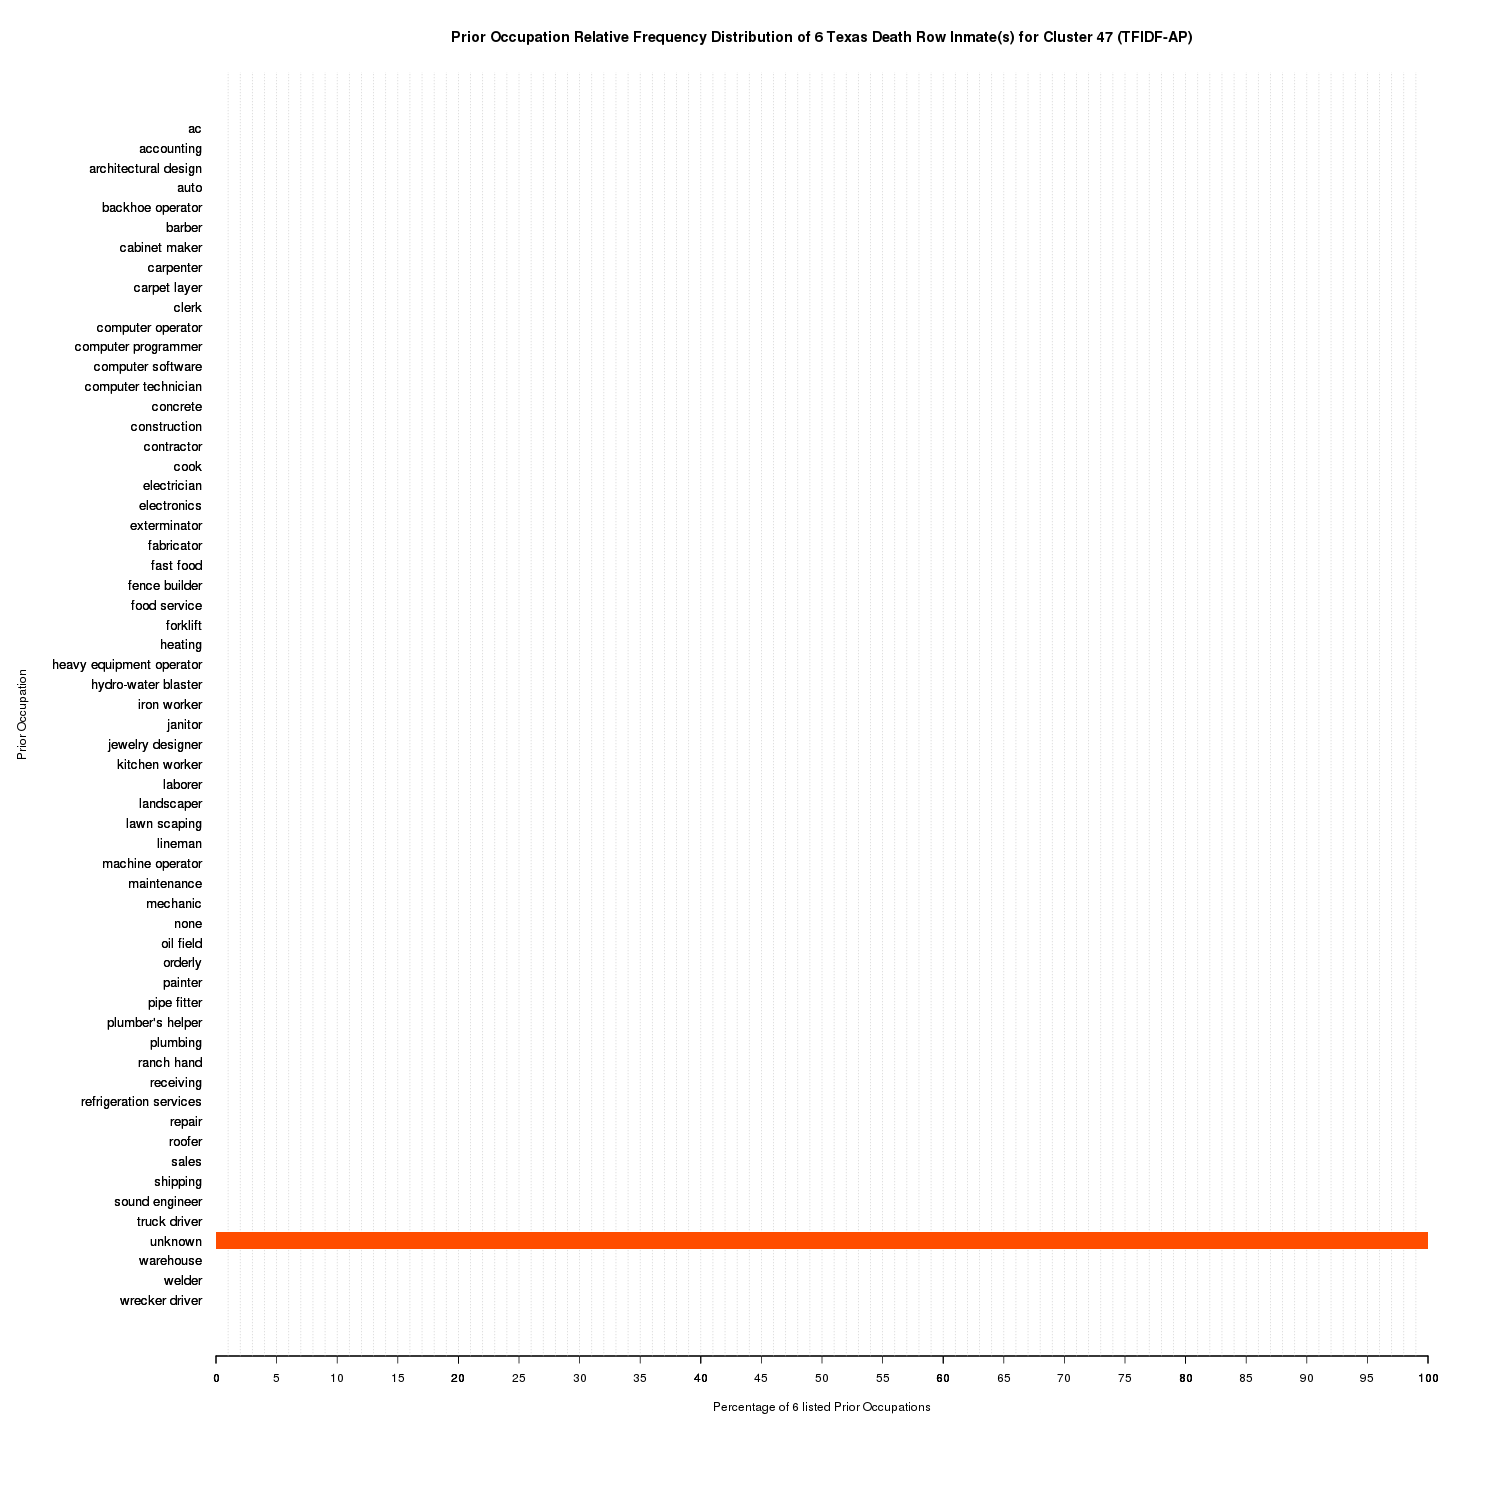 Prior Occupation Relative Frequency Distribution of 6 Texas Death Row Inmate(s) for Cluster 47 (TFIDF-AP)